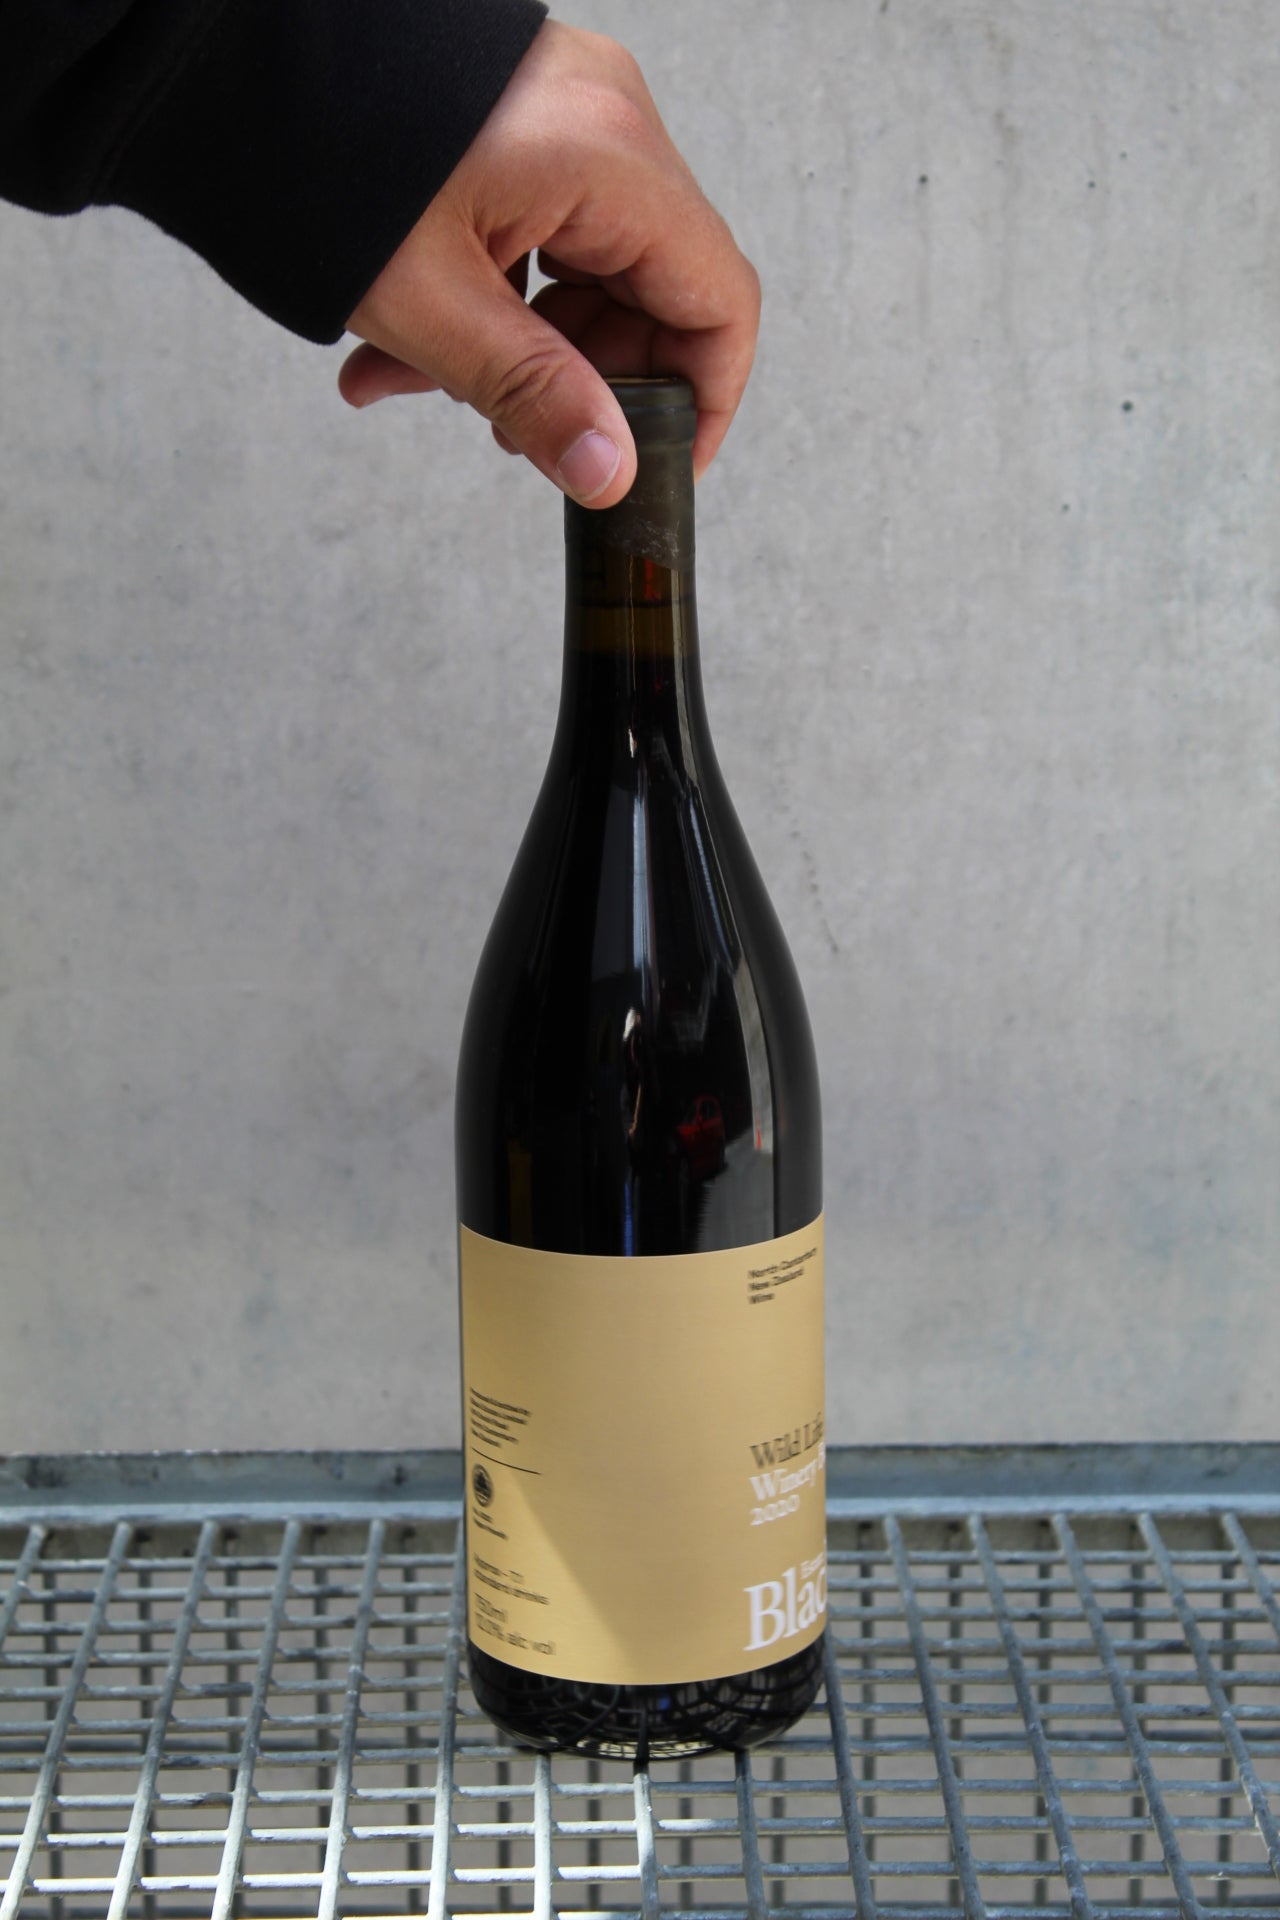 2020 Black Estate 'Wild Life' Pinot Noir